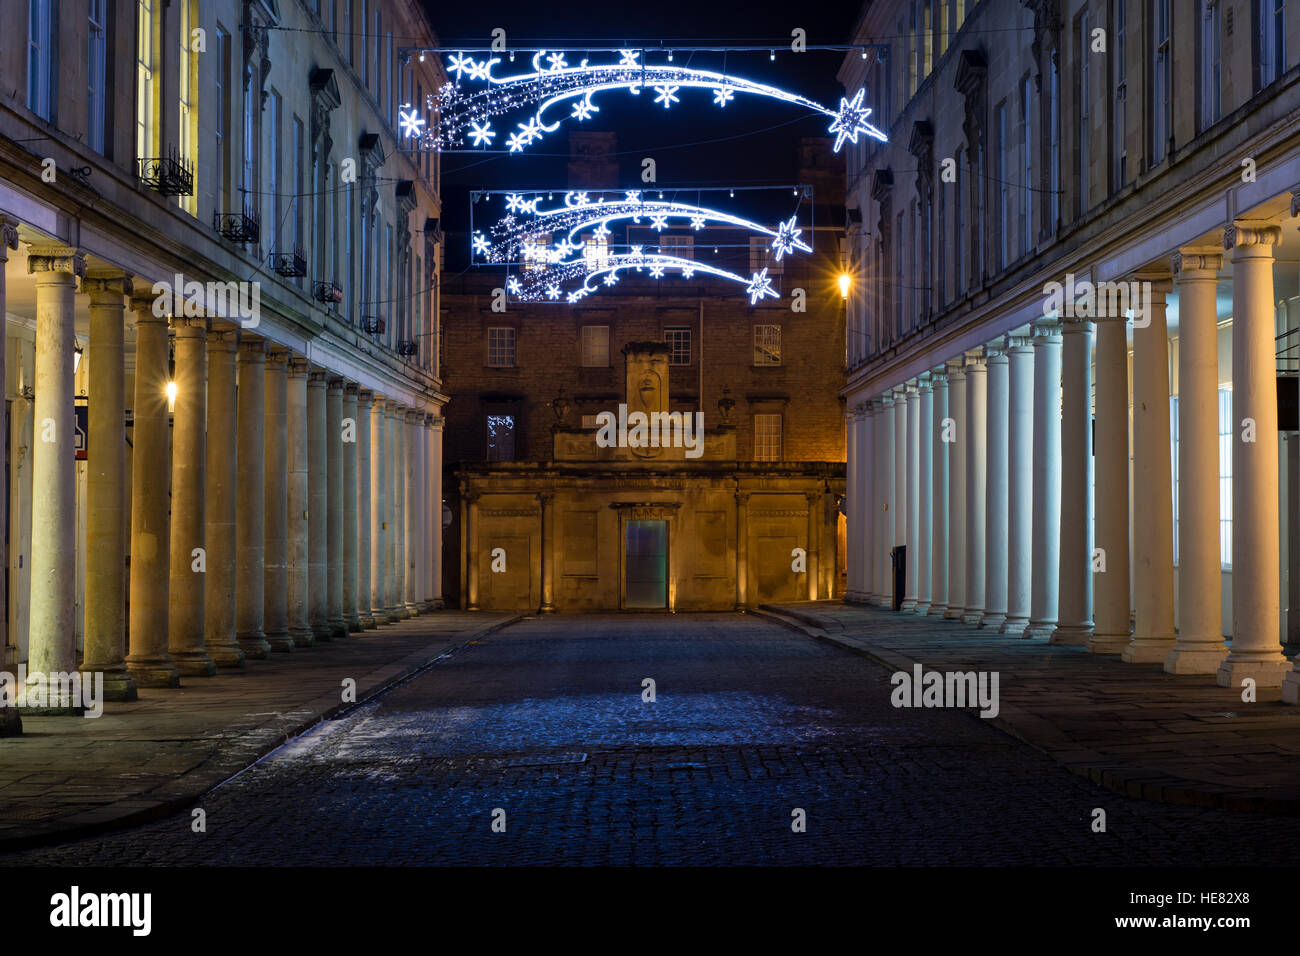 The Cross Bath Spa Building And Bath Street Spa In The